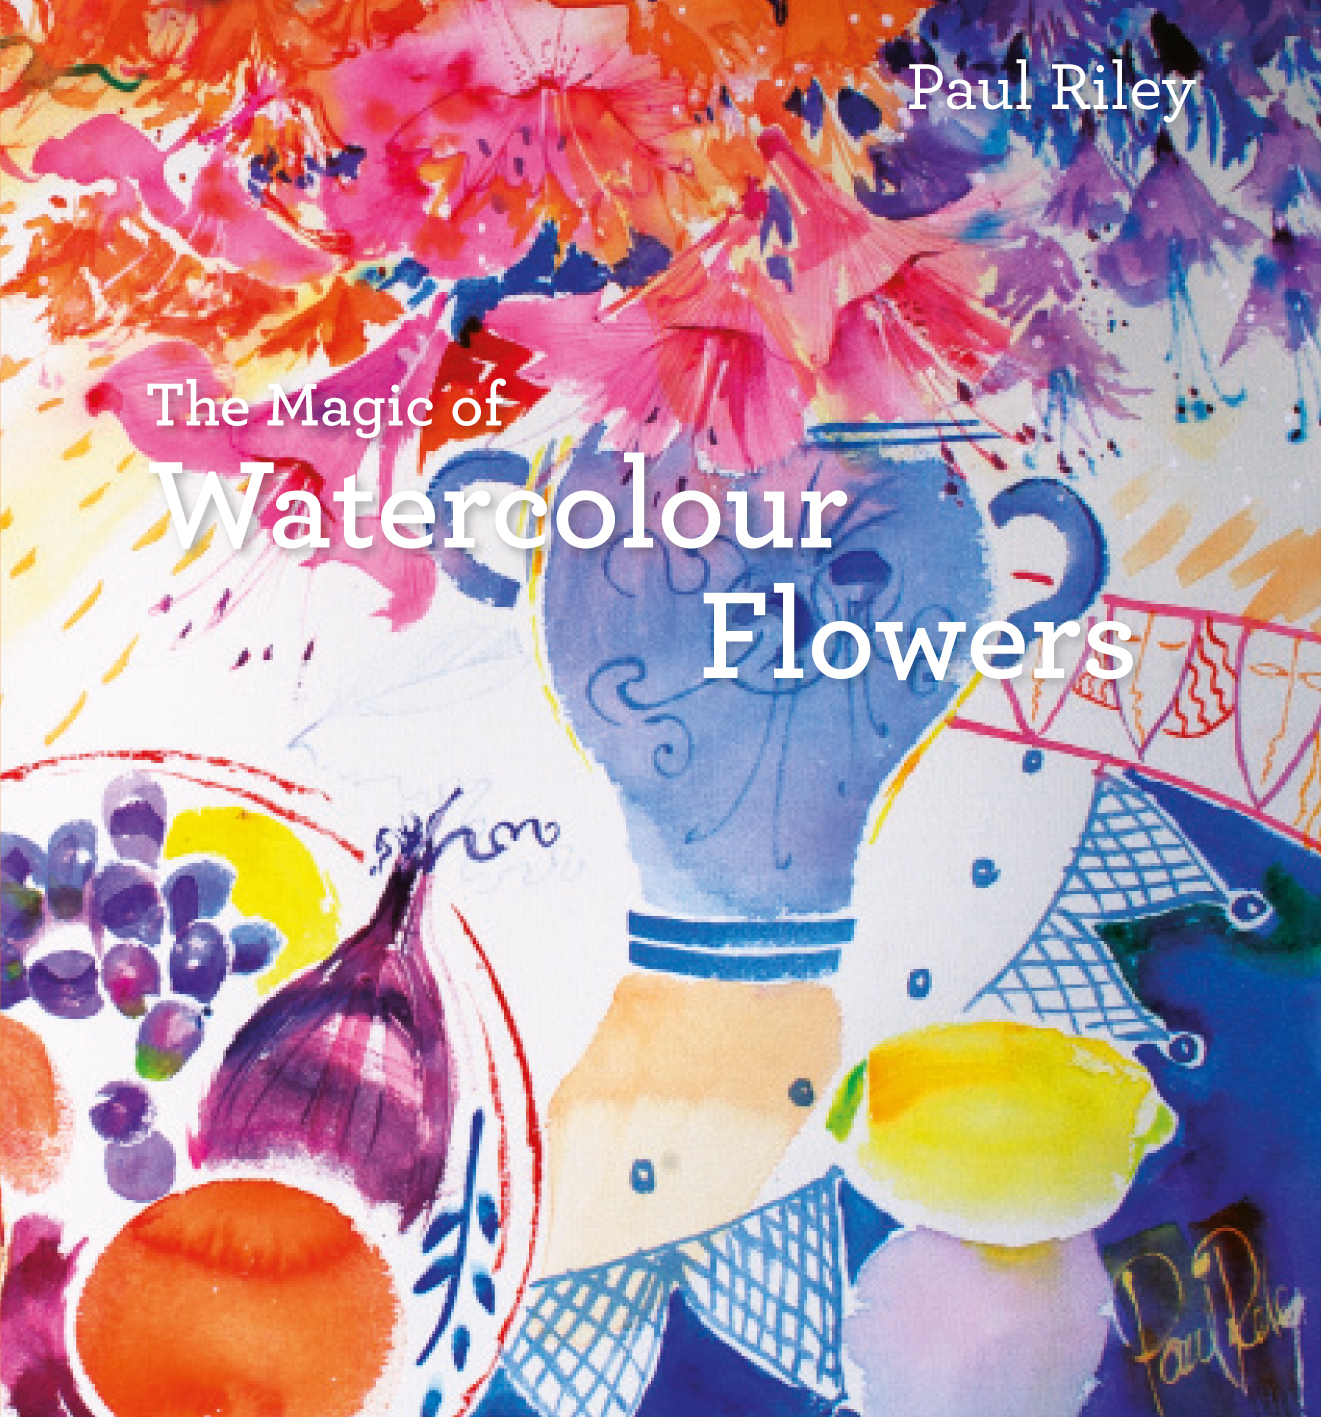 The Magic of Watercolour Flowers